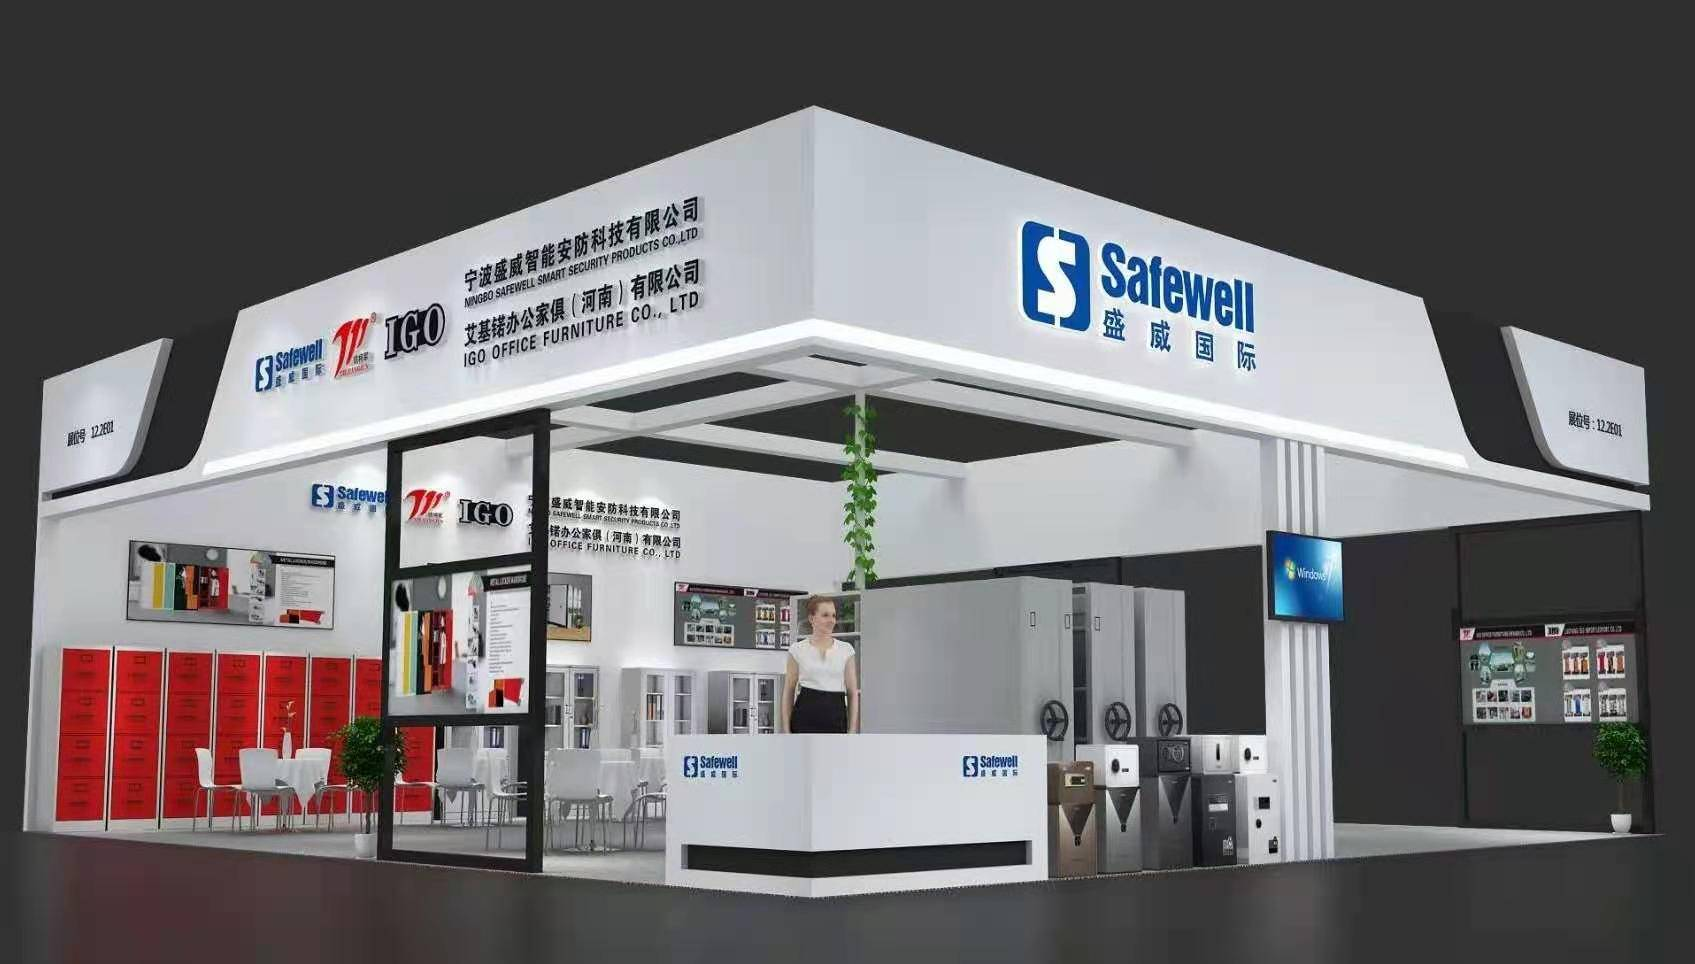 Safewell 47th CIFF Guangzhou Furniture Fair Invitation.